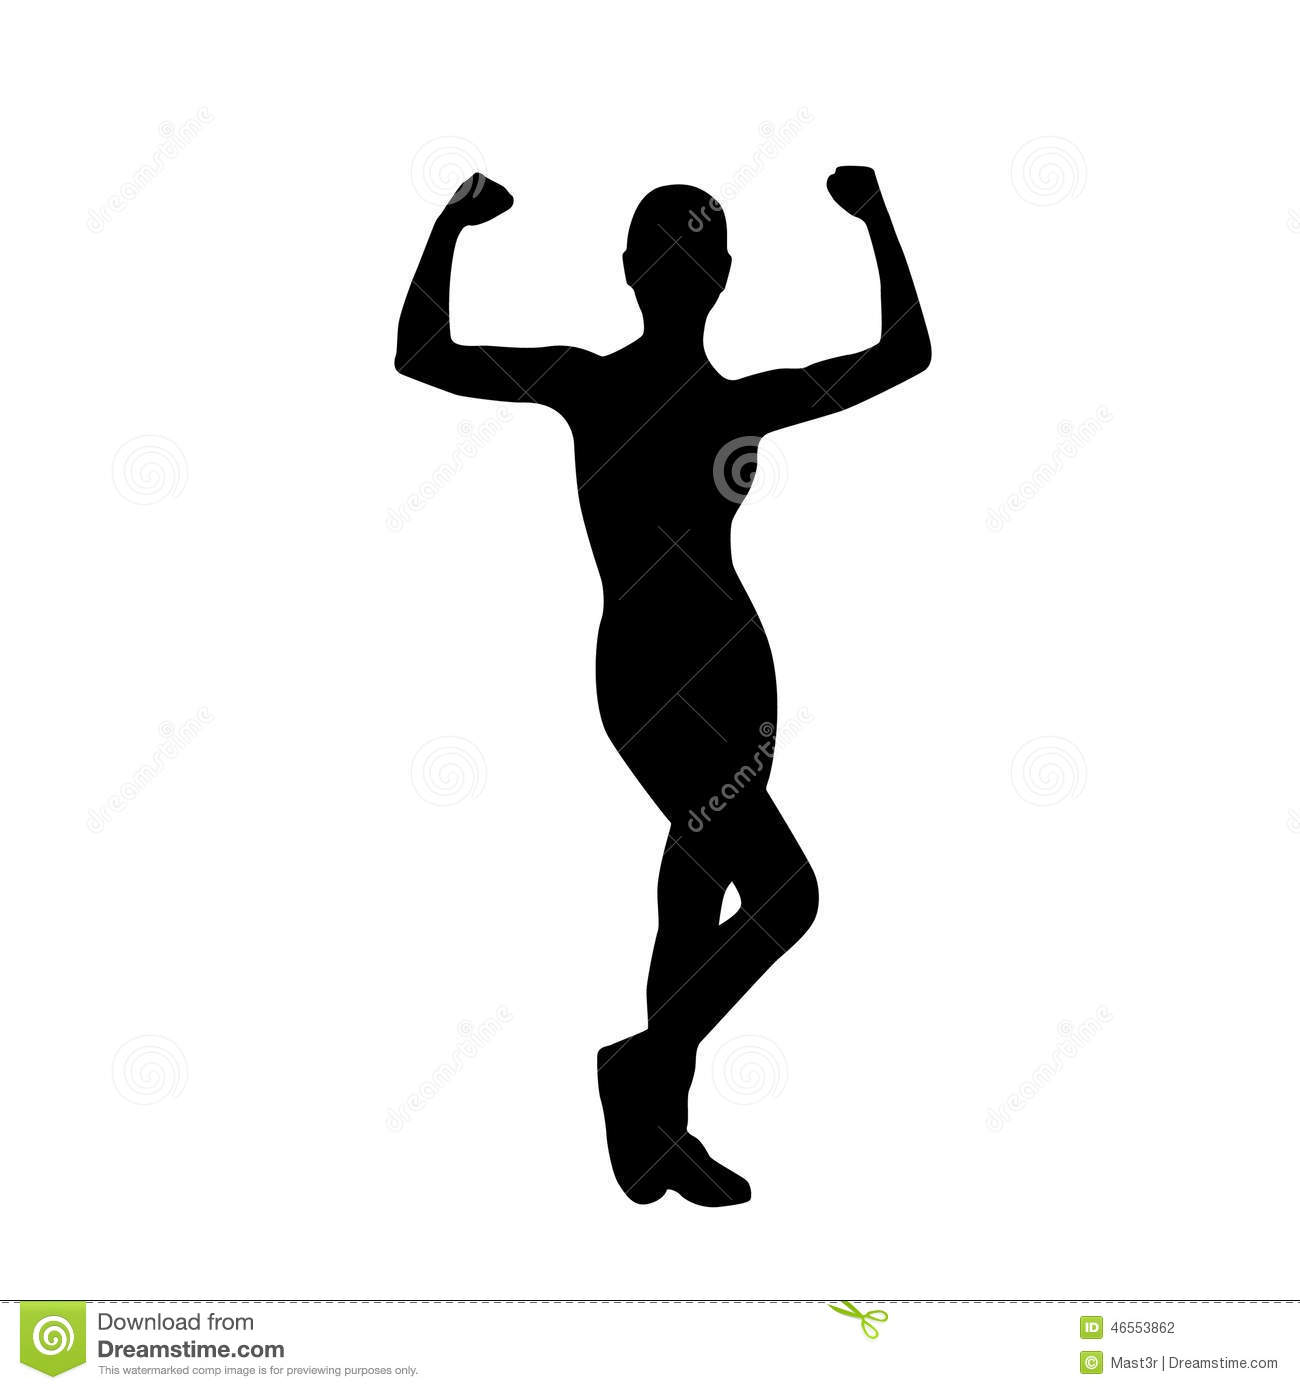 32 Exercise Silhouettes Stock Image.